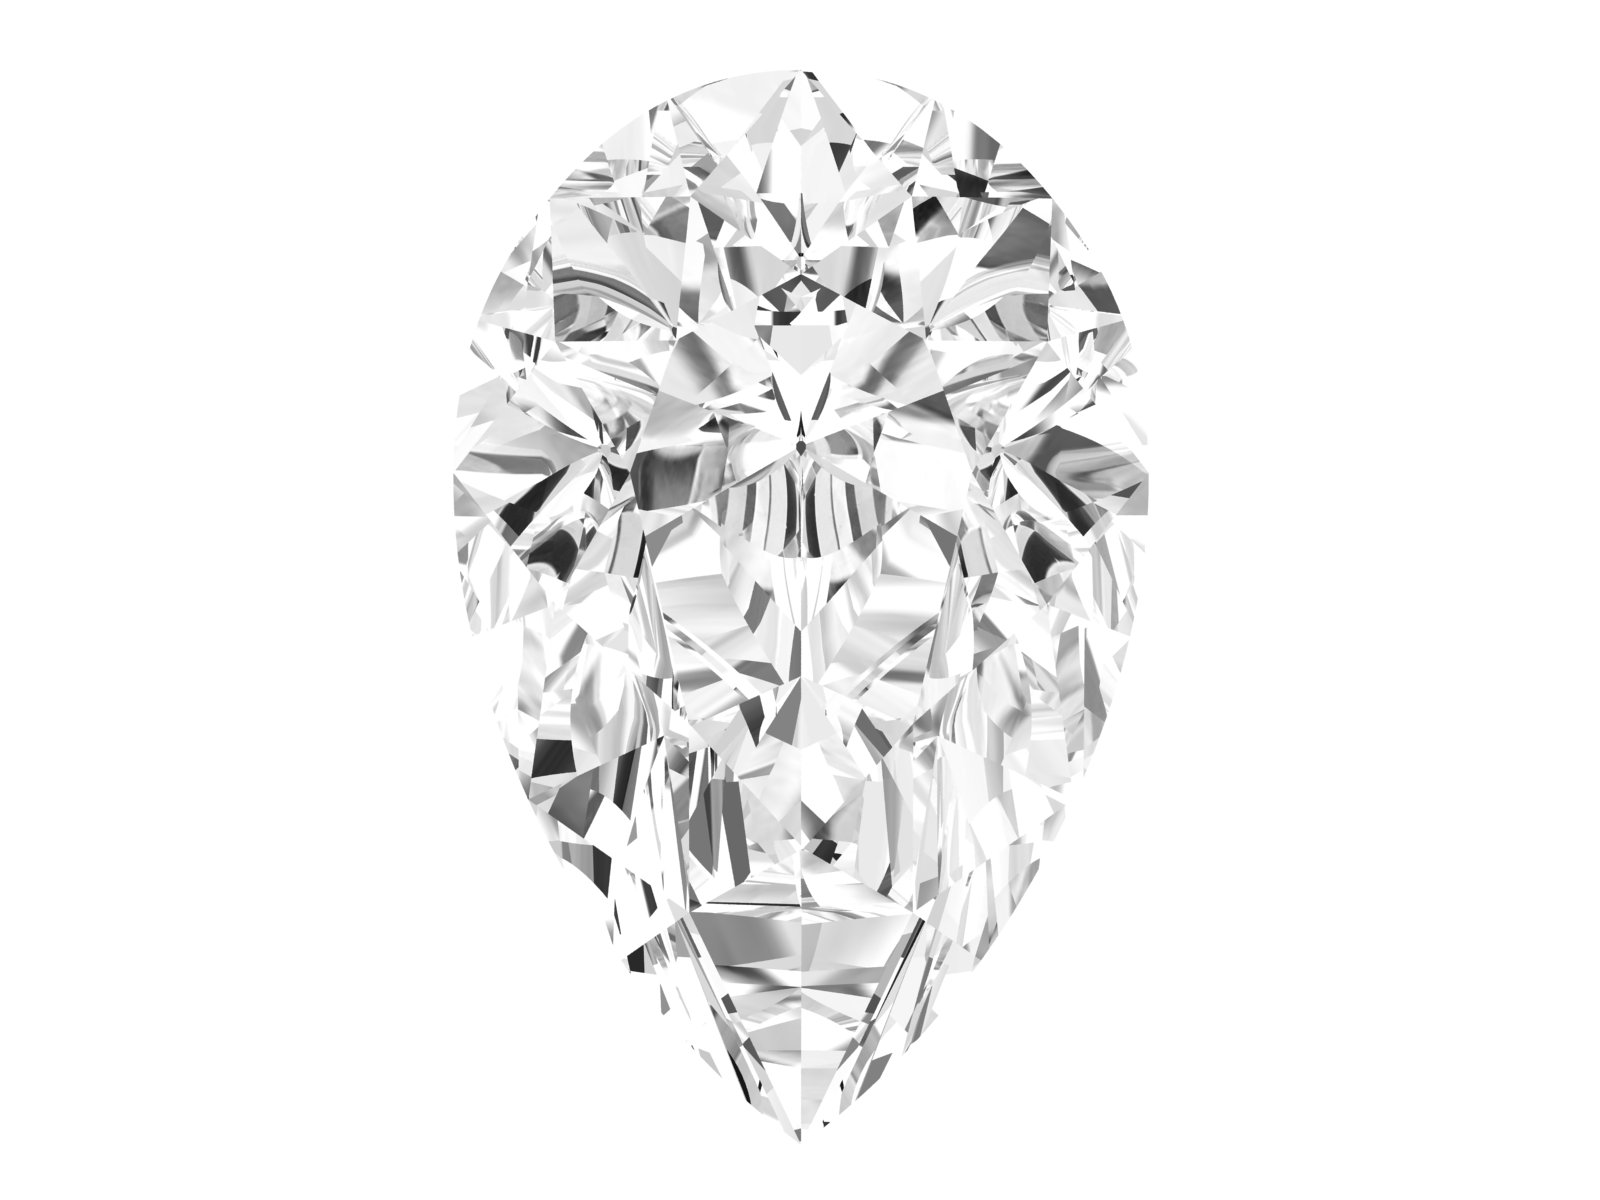 0.51 Carat Pear Diamond